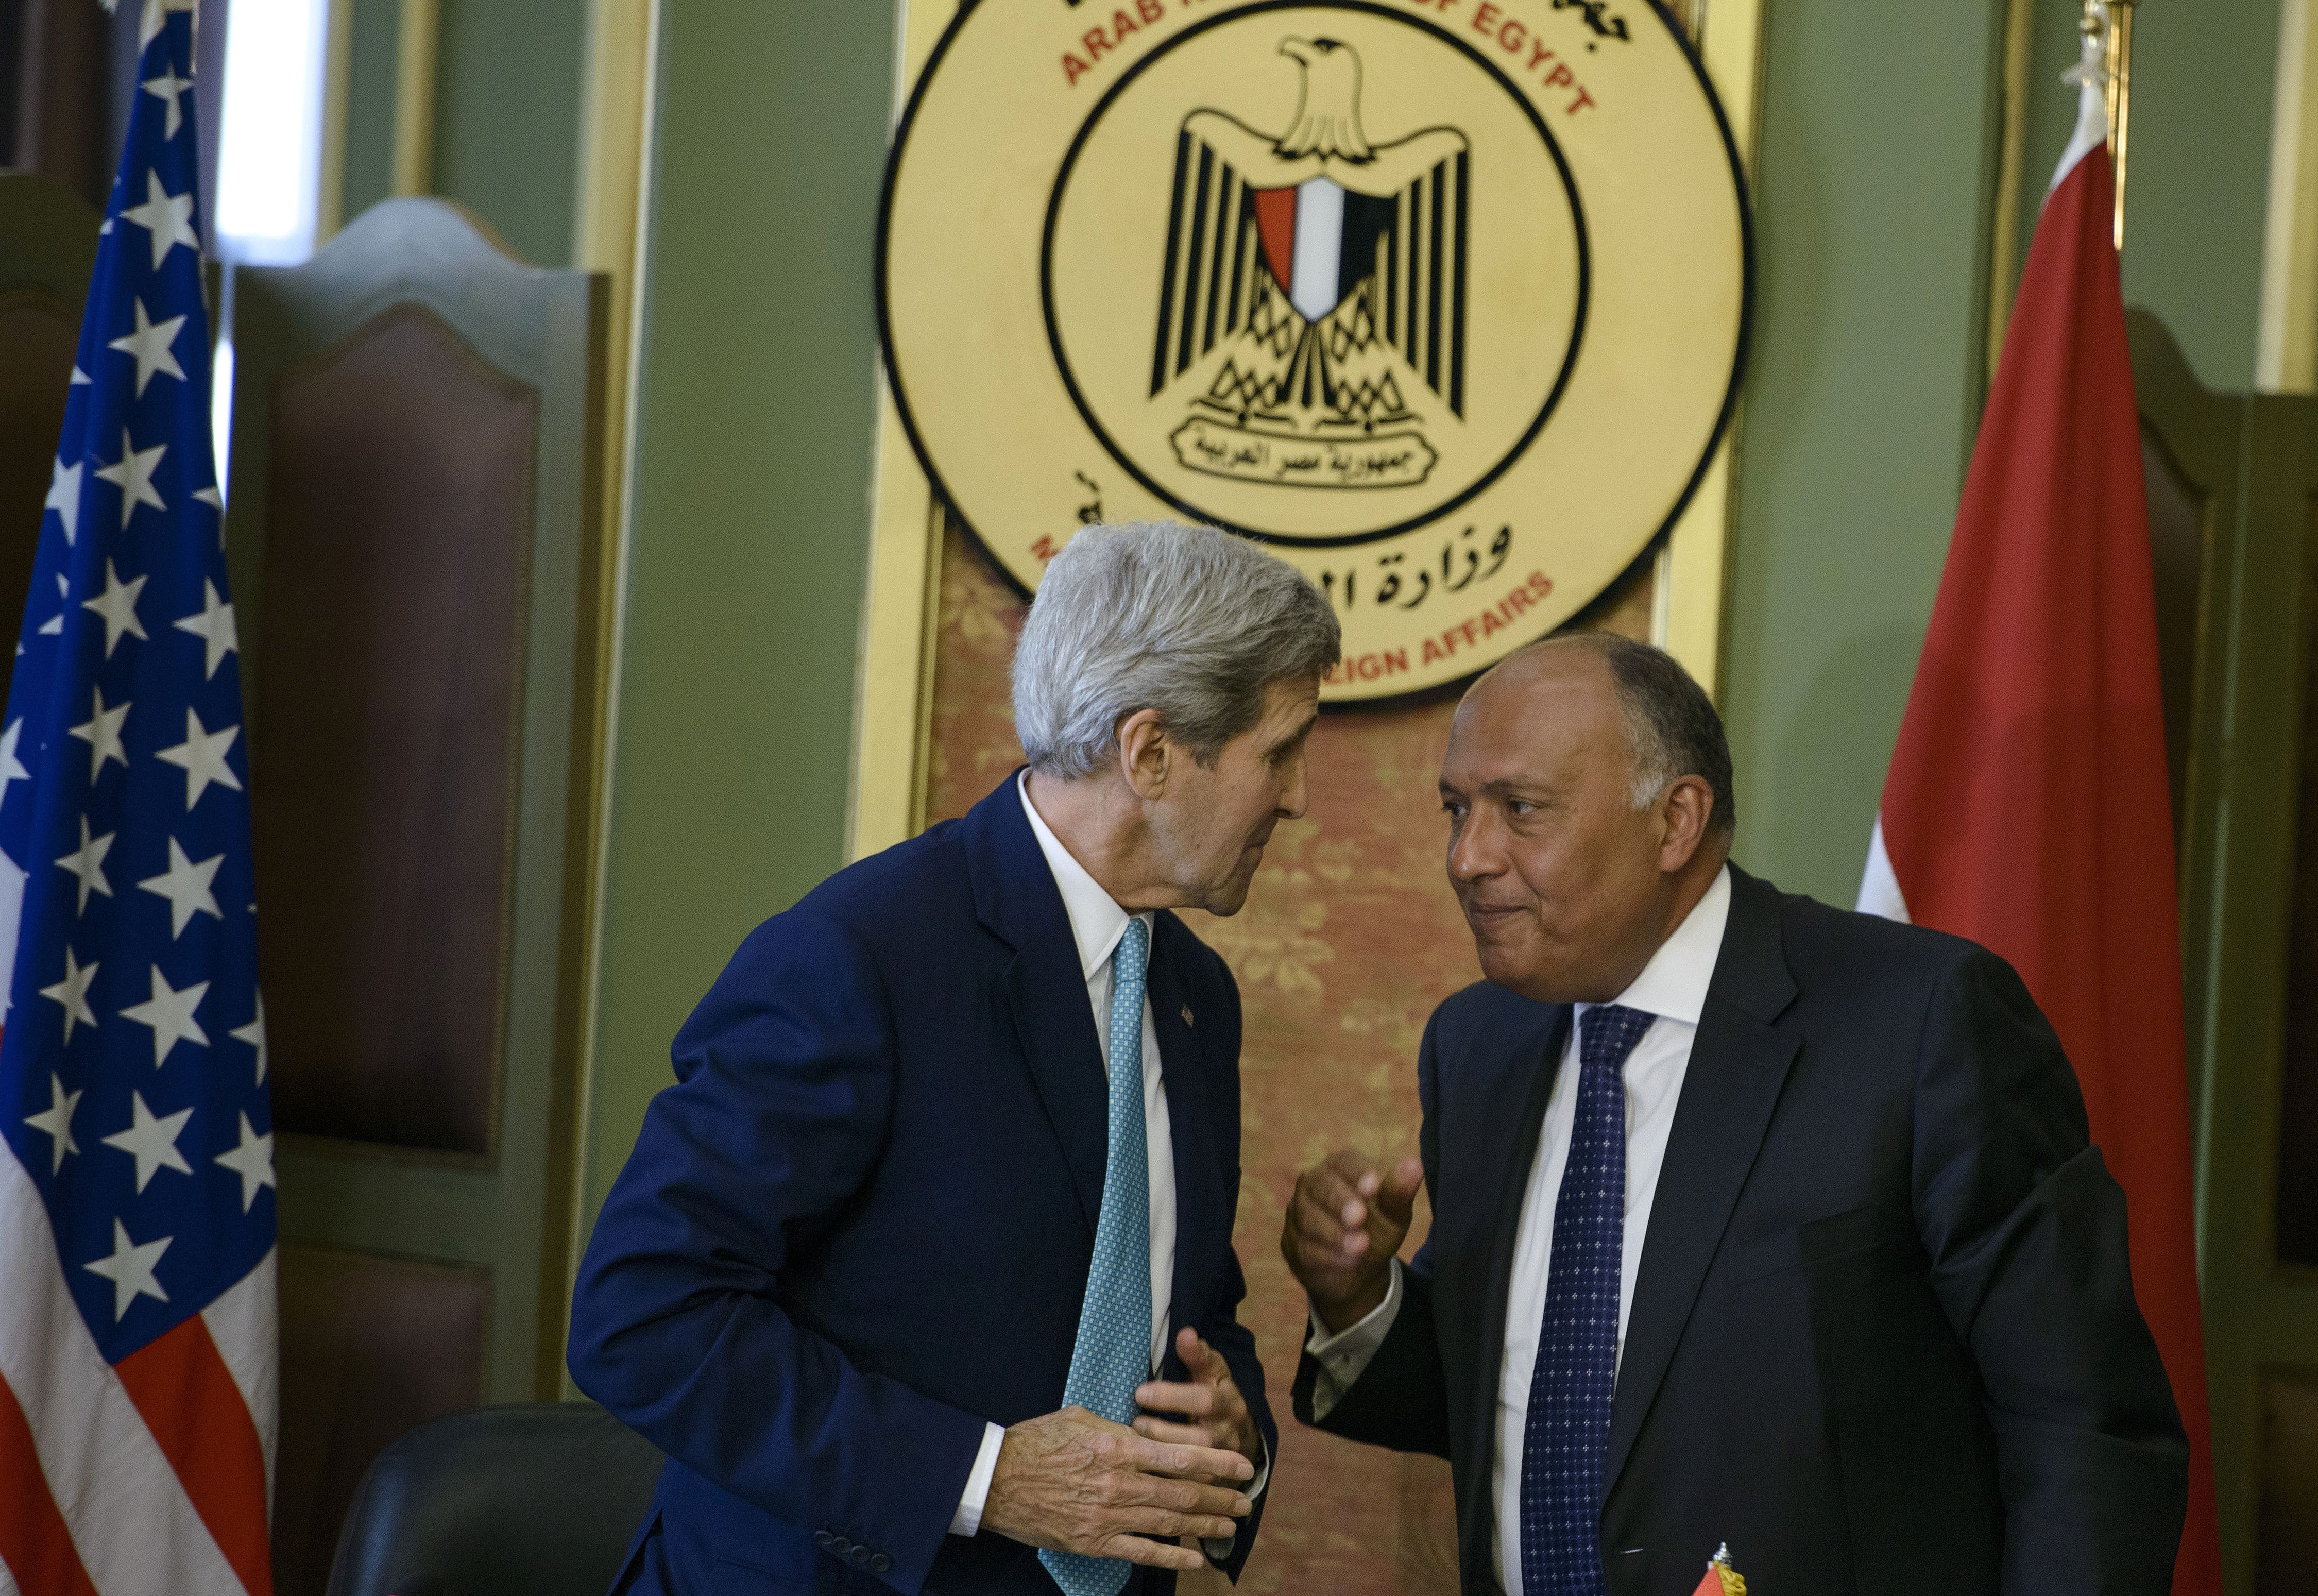 US Secretary of State John Kerry (L) and Egypt's Foreign Minister Sameh Shoukry. BRENDAN SMIALOWSKI/AFP/Getty Images)